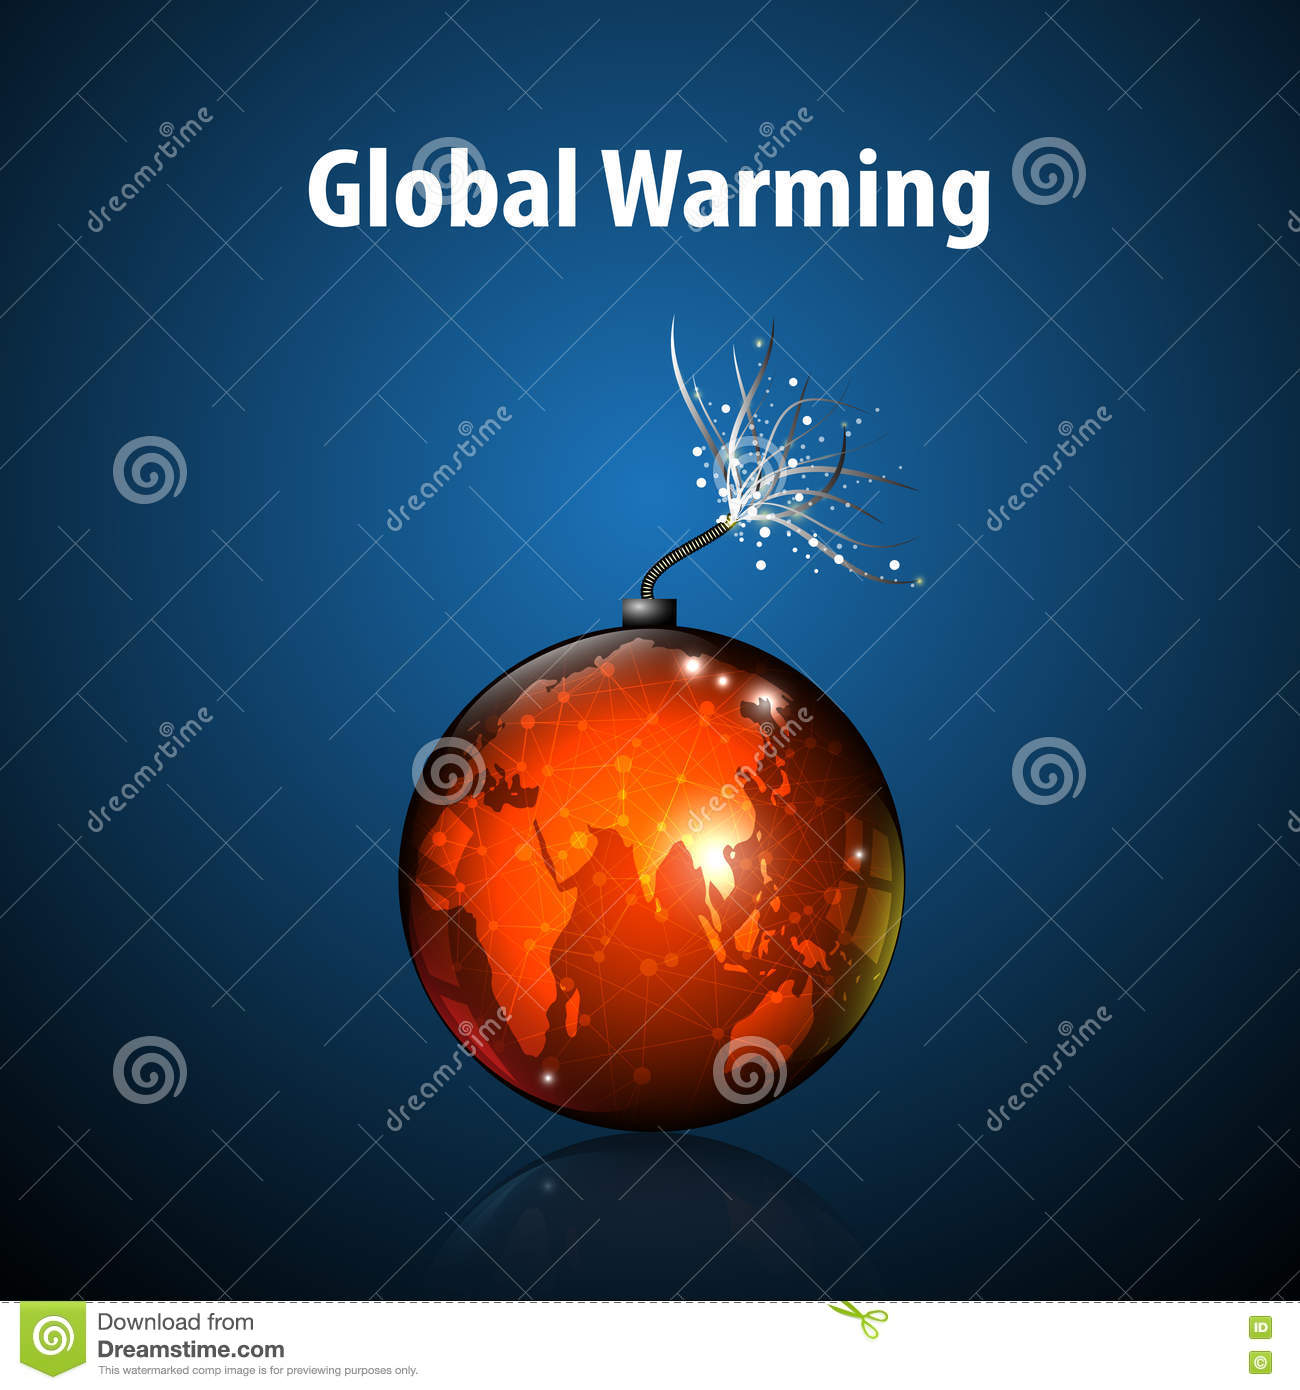 I need an abstract about Global Warming?